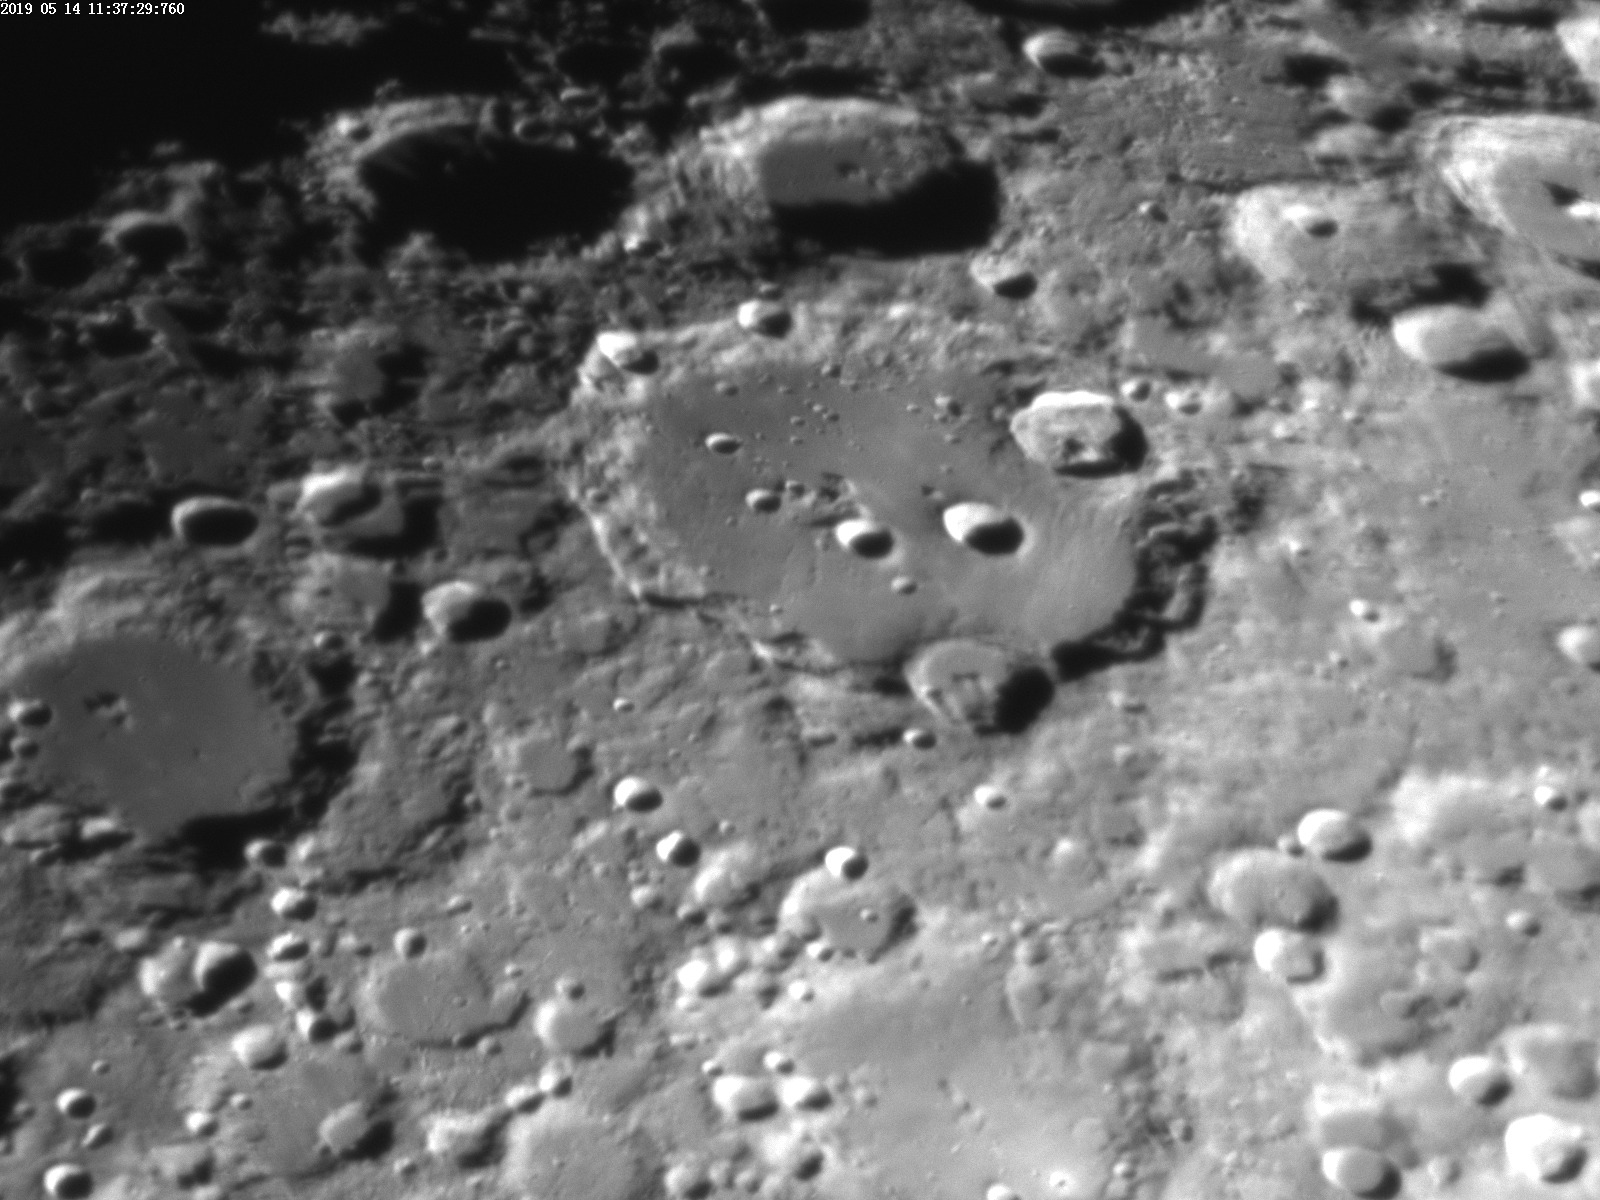 Moon_00022 11_37_30Z.png